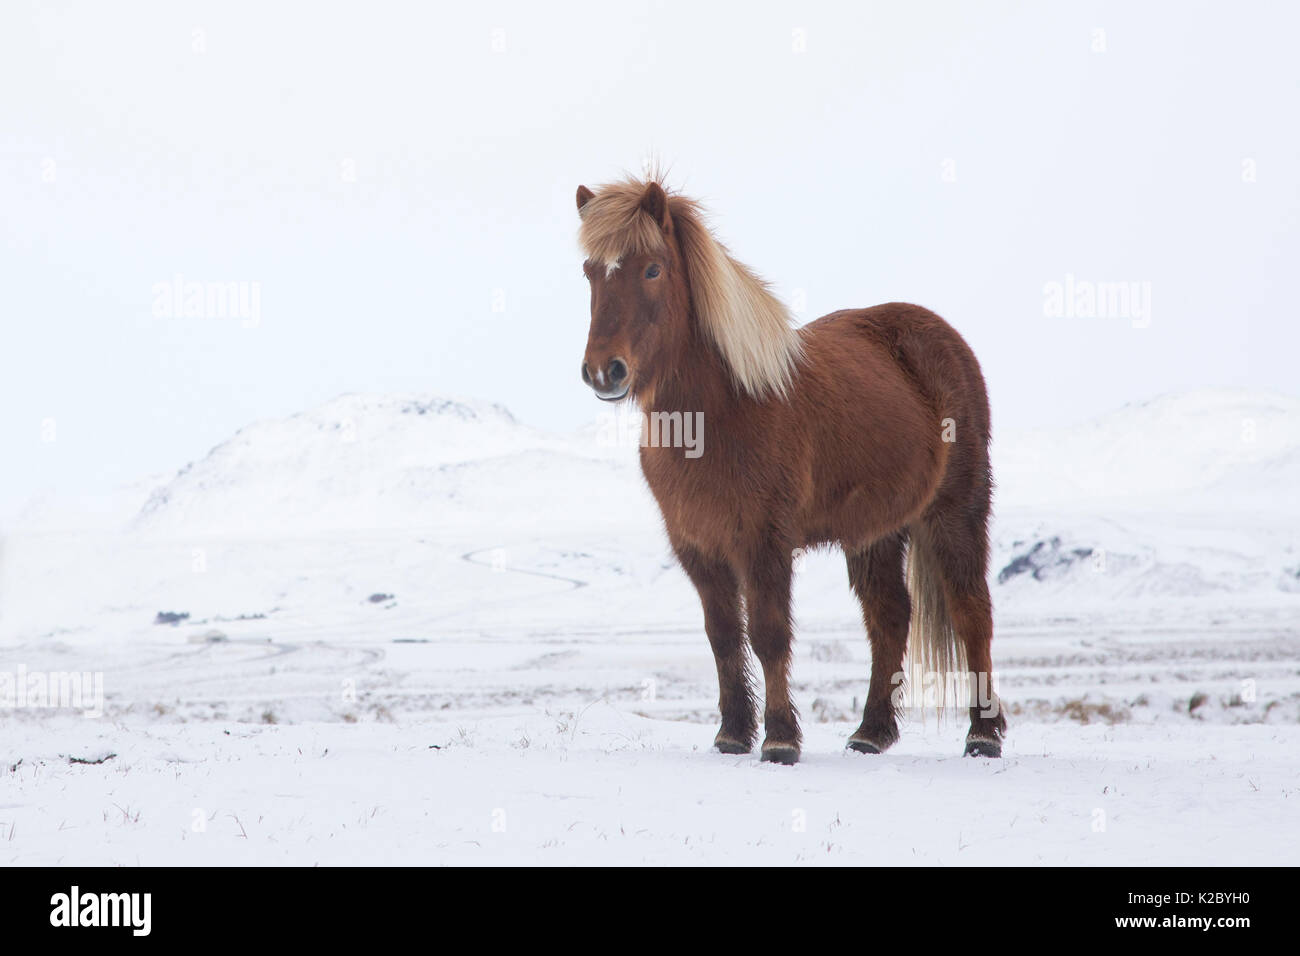 Icelandic horse in winter, Iceland. March. - Stock Image